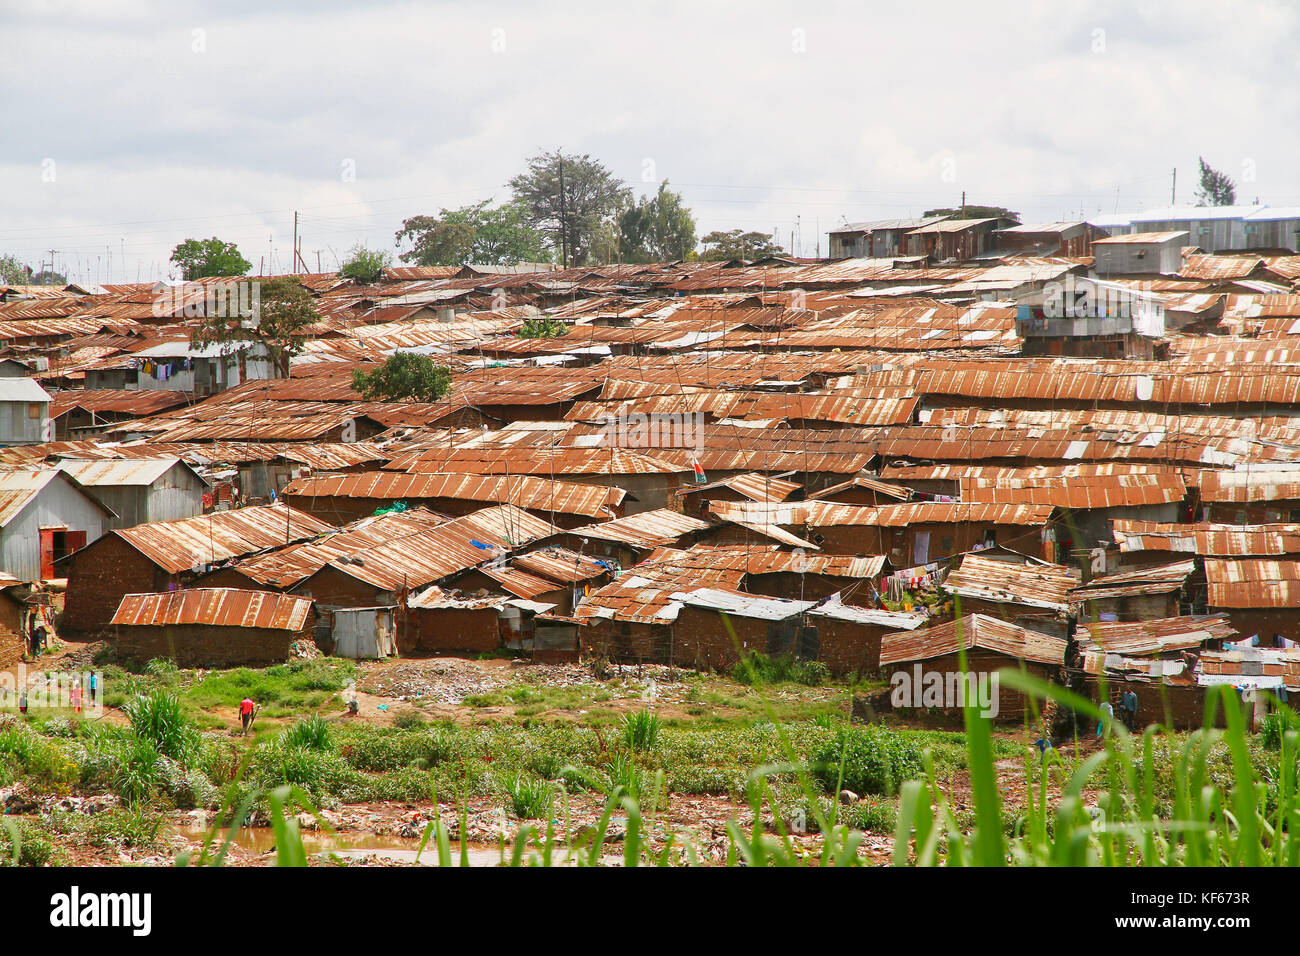 Living in the Kenya Slum Aerias - The rusted Roofs of Kibera Slum - Stock Image